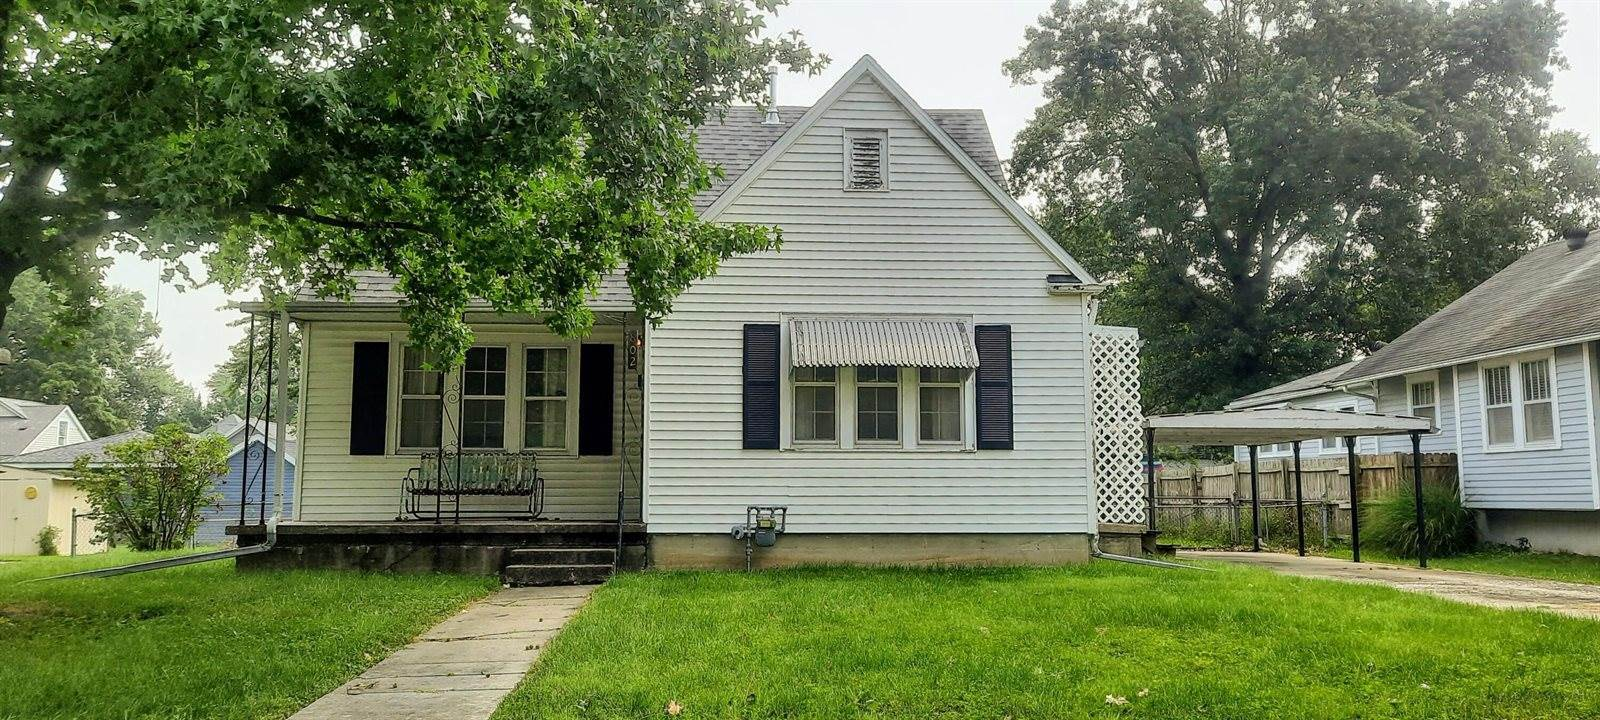 802 South Olive St, Mexico, MO 65265